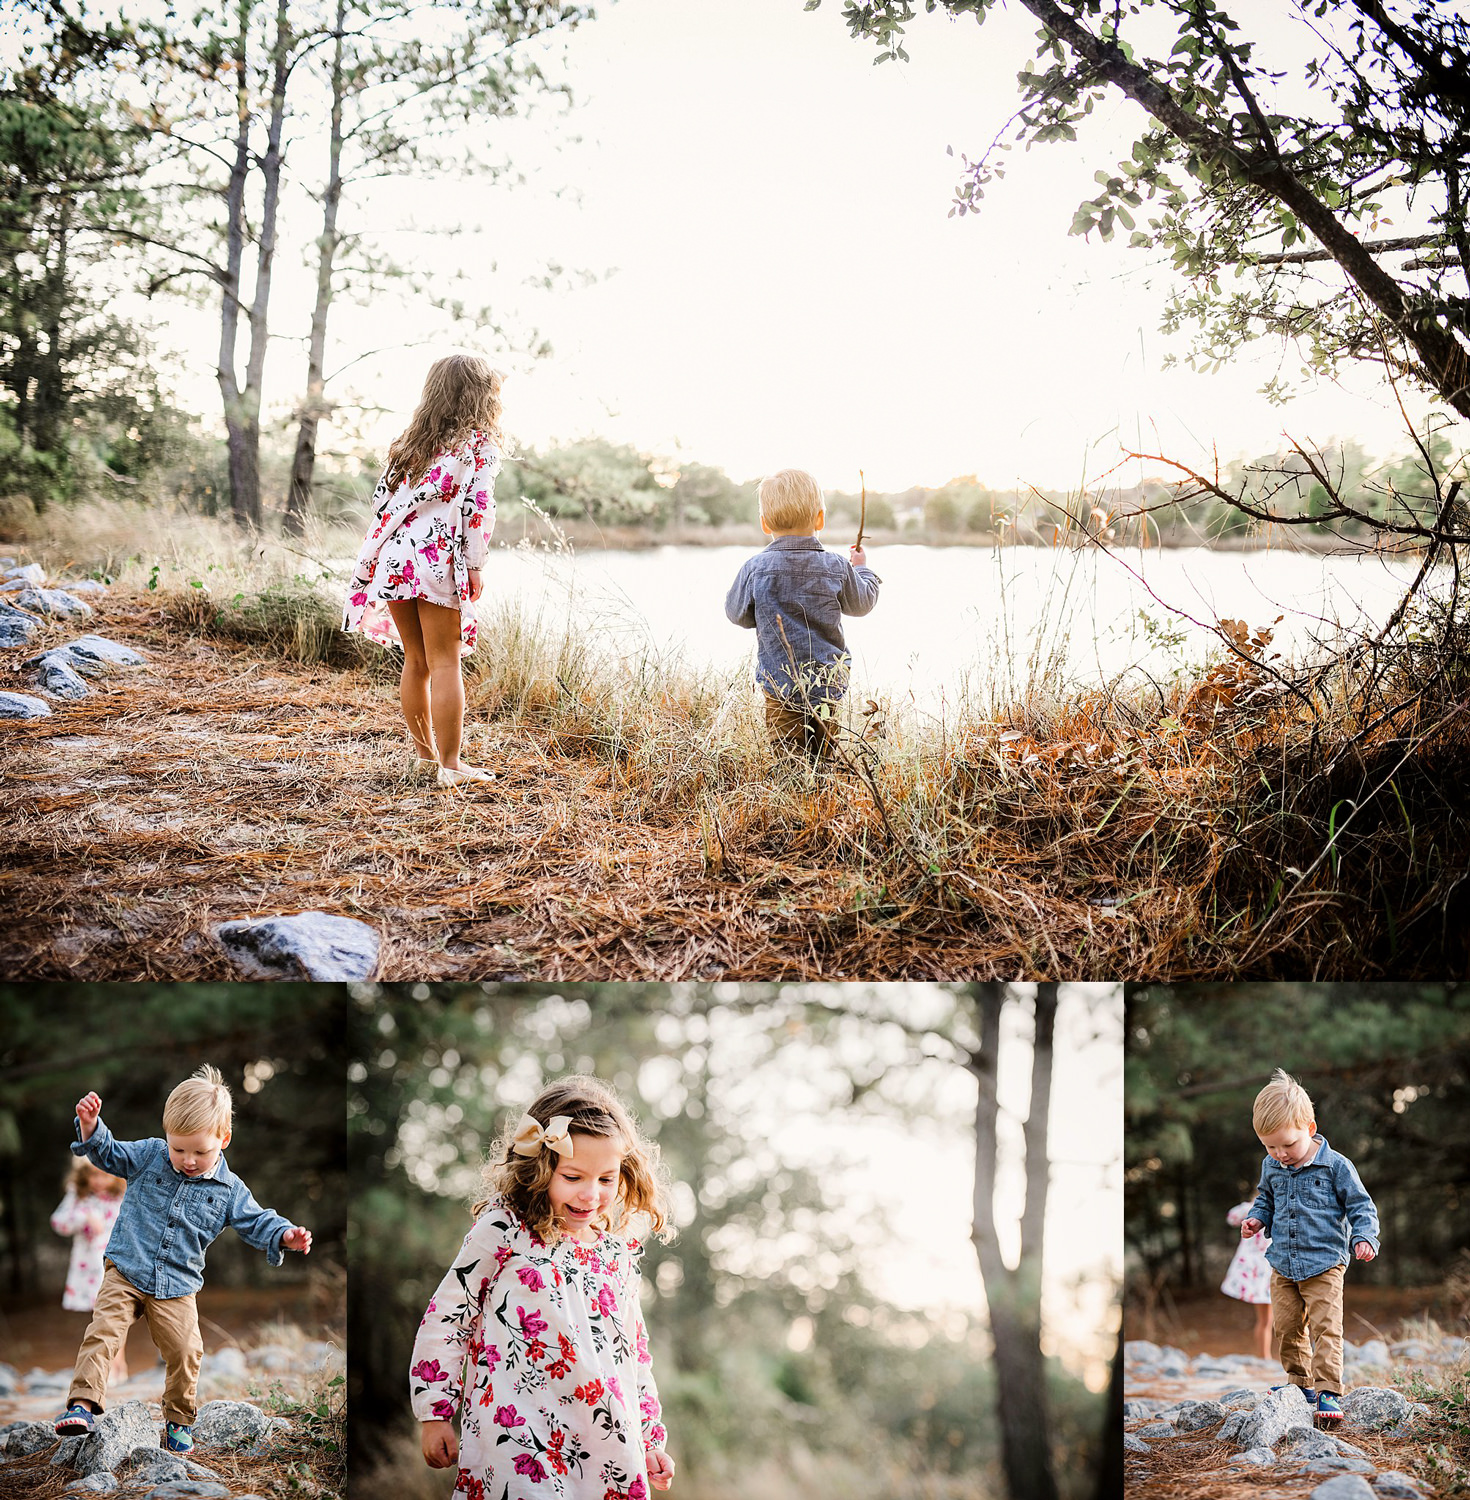 candid-family-lifestyle-pictures-pleasure-house-point-melissa-bliss-photography.jpg